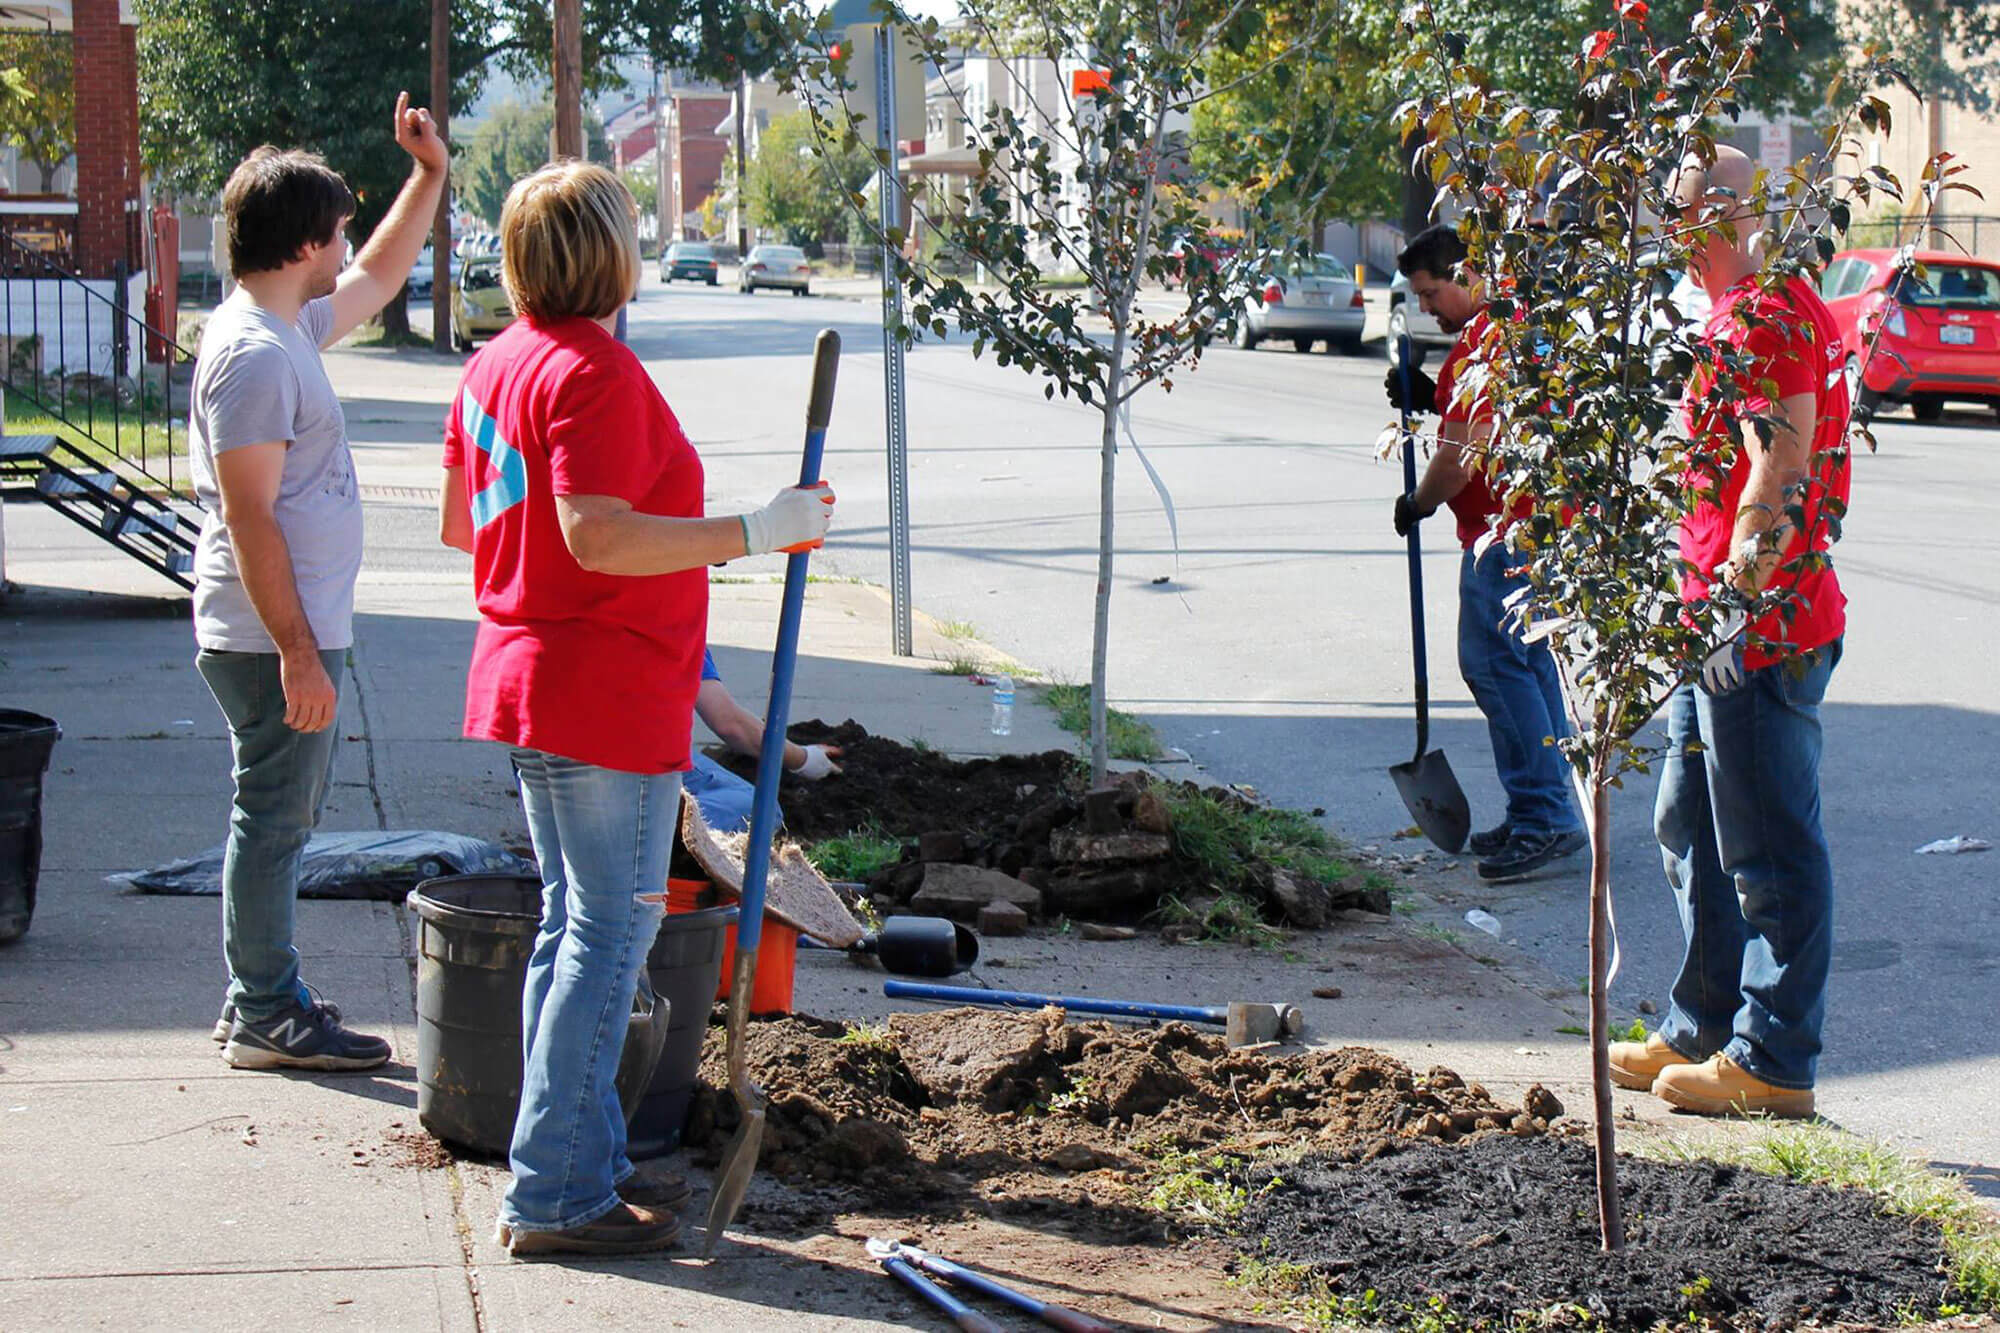 Volunteers help ReNewport Executive Director Josh Tunning (far left) plant trees where they've depaved sections of the sidewalk in Newport, Kentucky. (Photo by Bonnie Jean Feldkamp/Eye on Ohio)